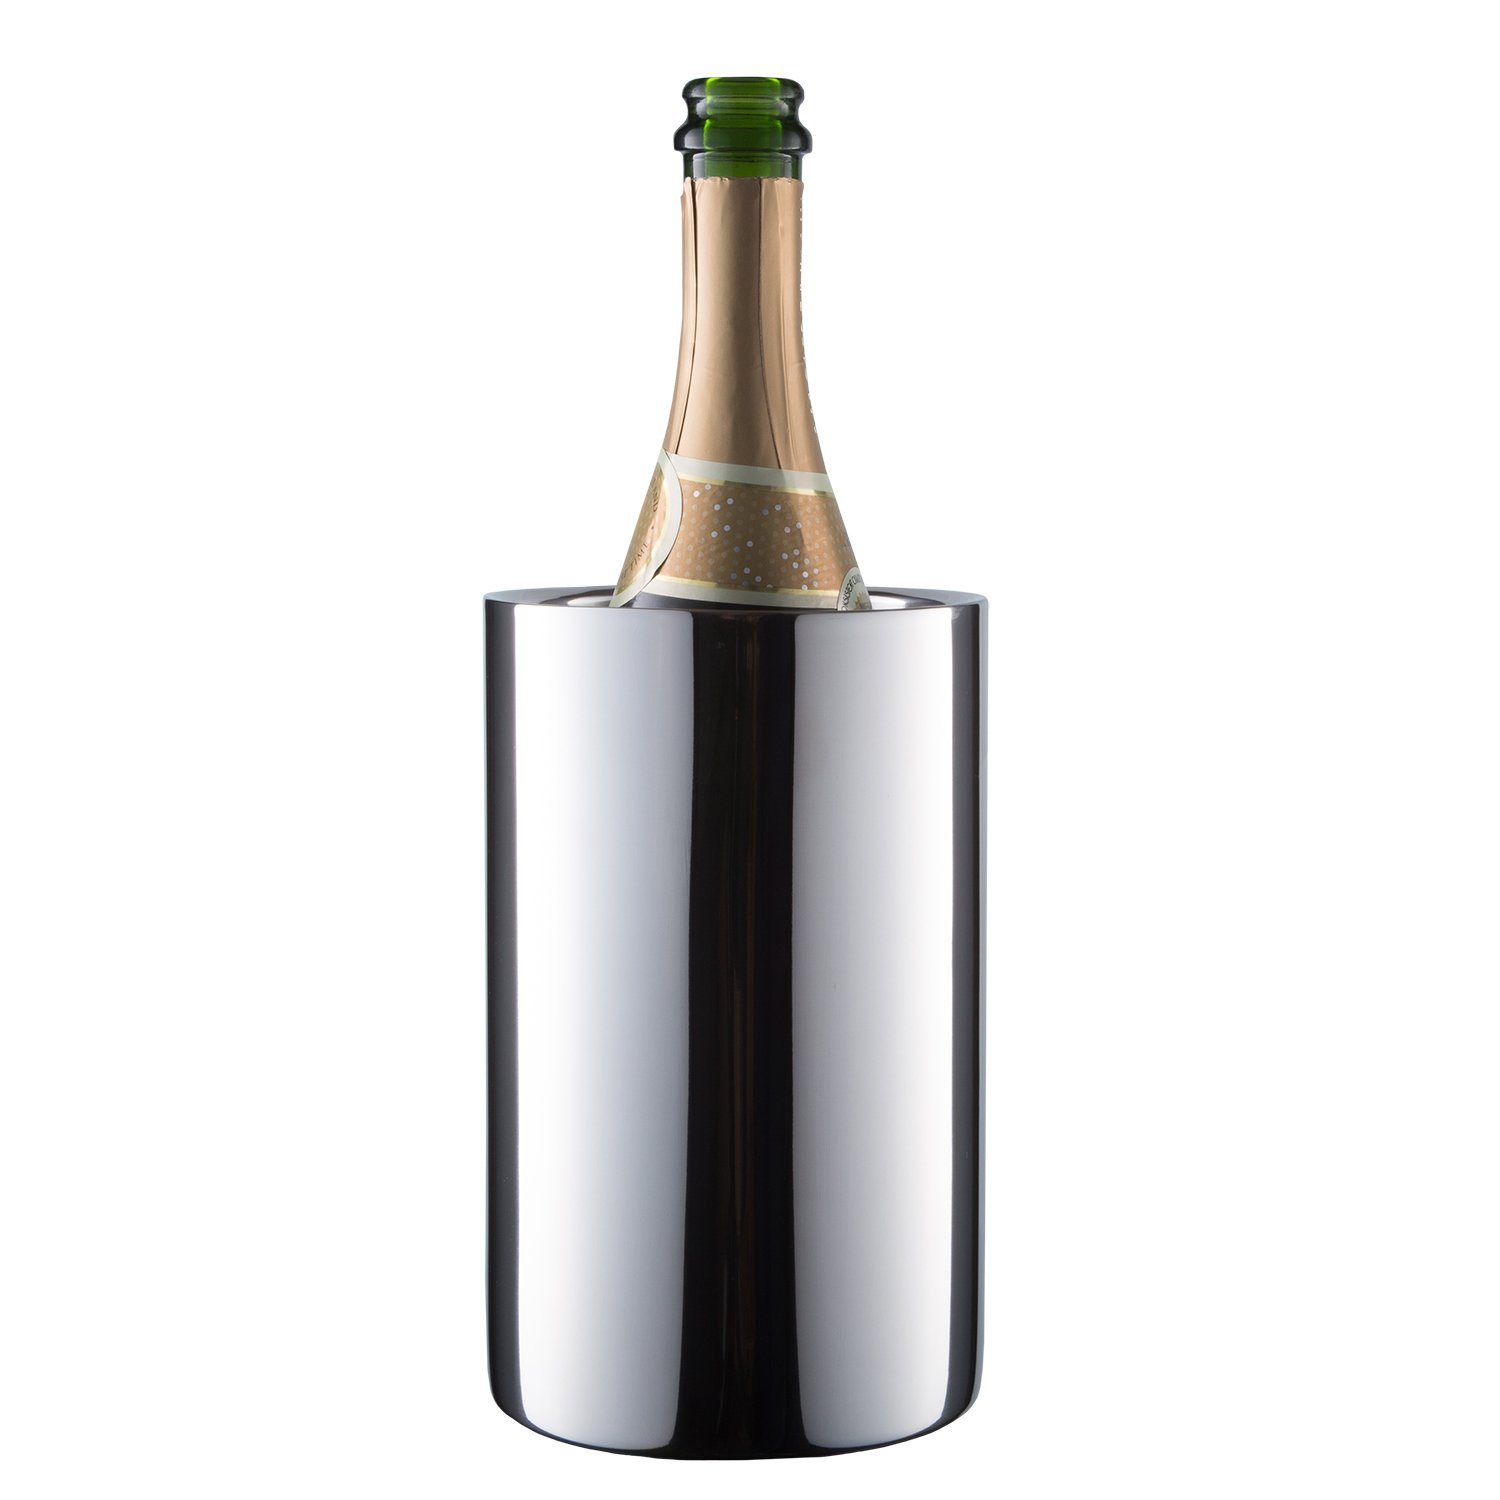 Enoluxe Wine Chiller - Insulated Wine Cooler Bucket/Champagne Bucket - Fits All 750 ml Bottles - Keeps Wine Cold